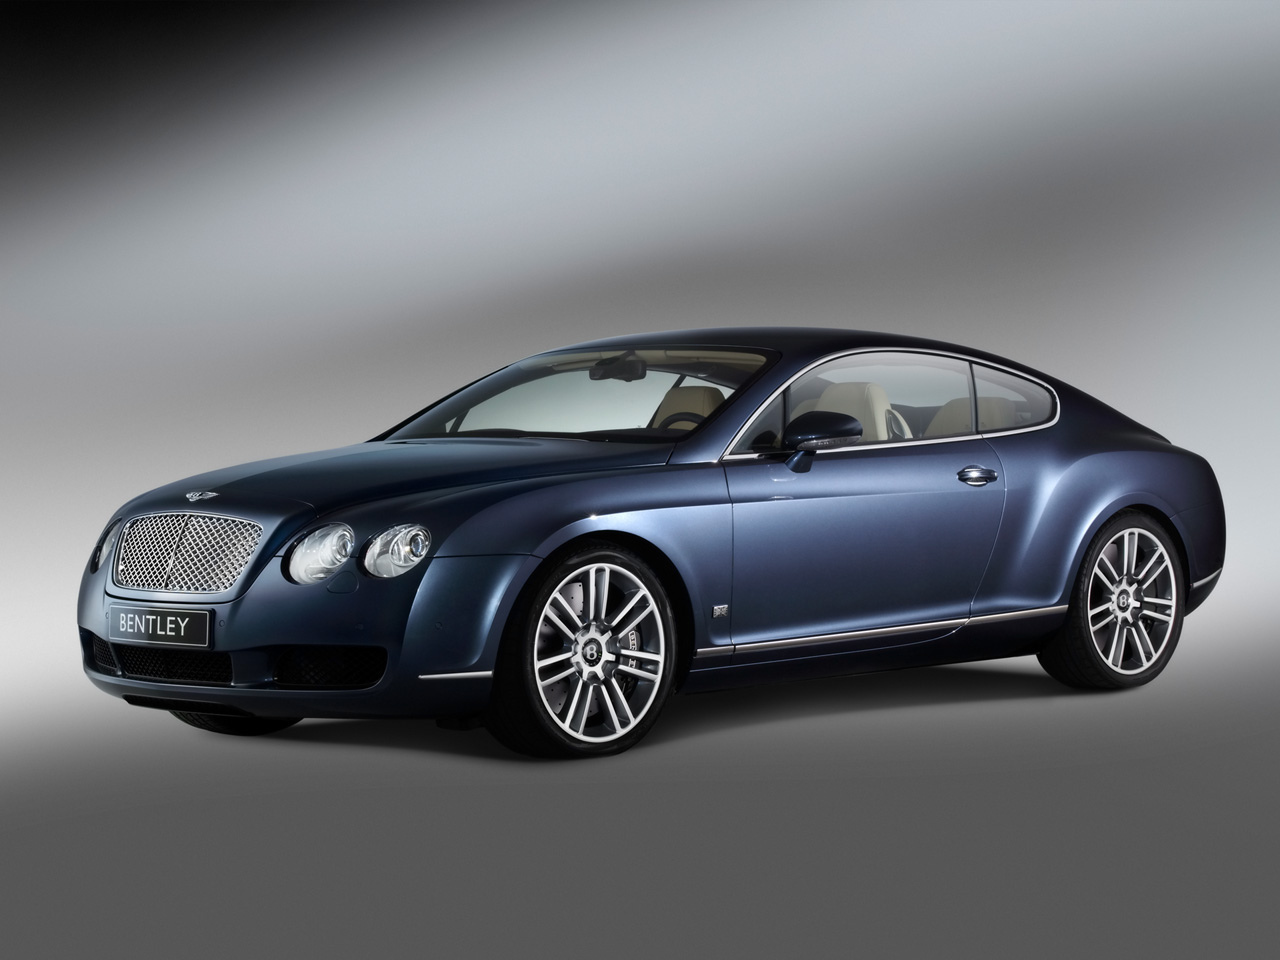 2006 Bentley Continental GT Base picture